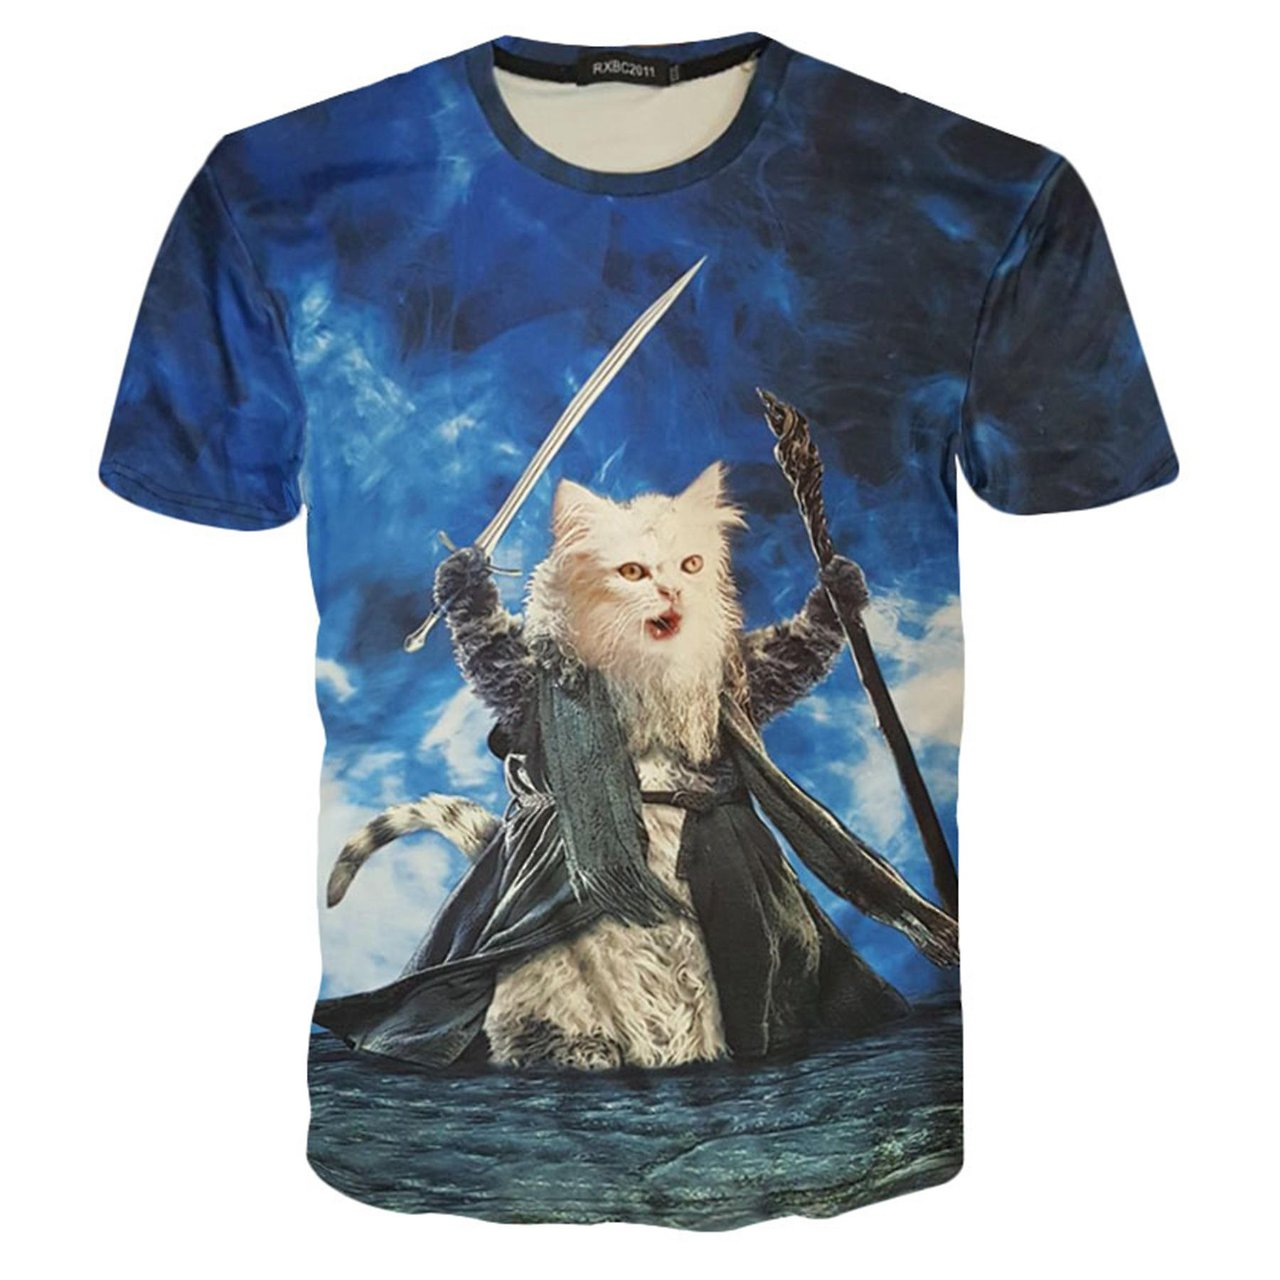 Wizard Cat T-Shirt